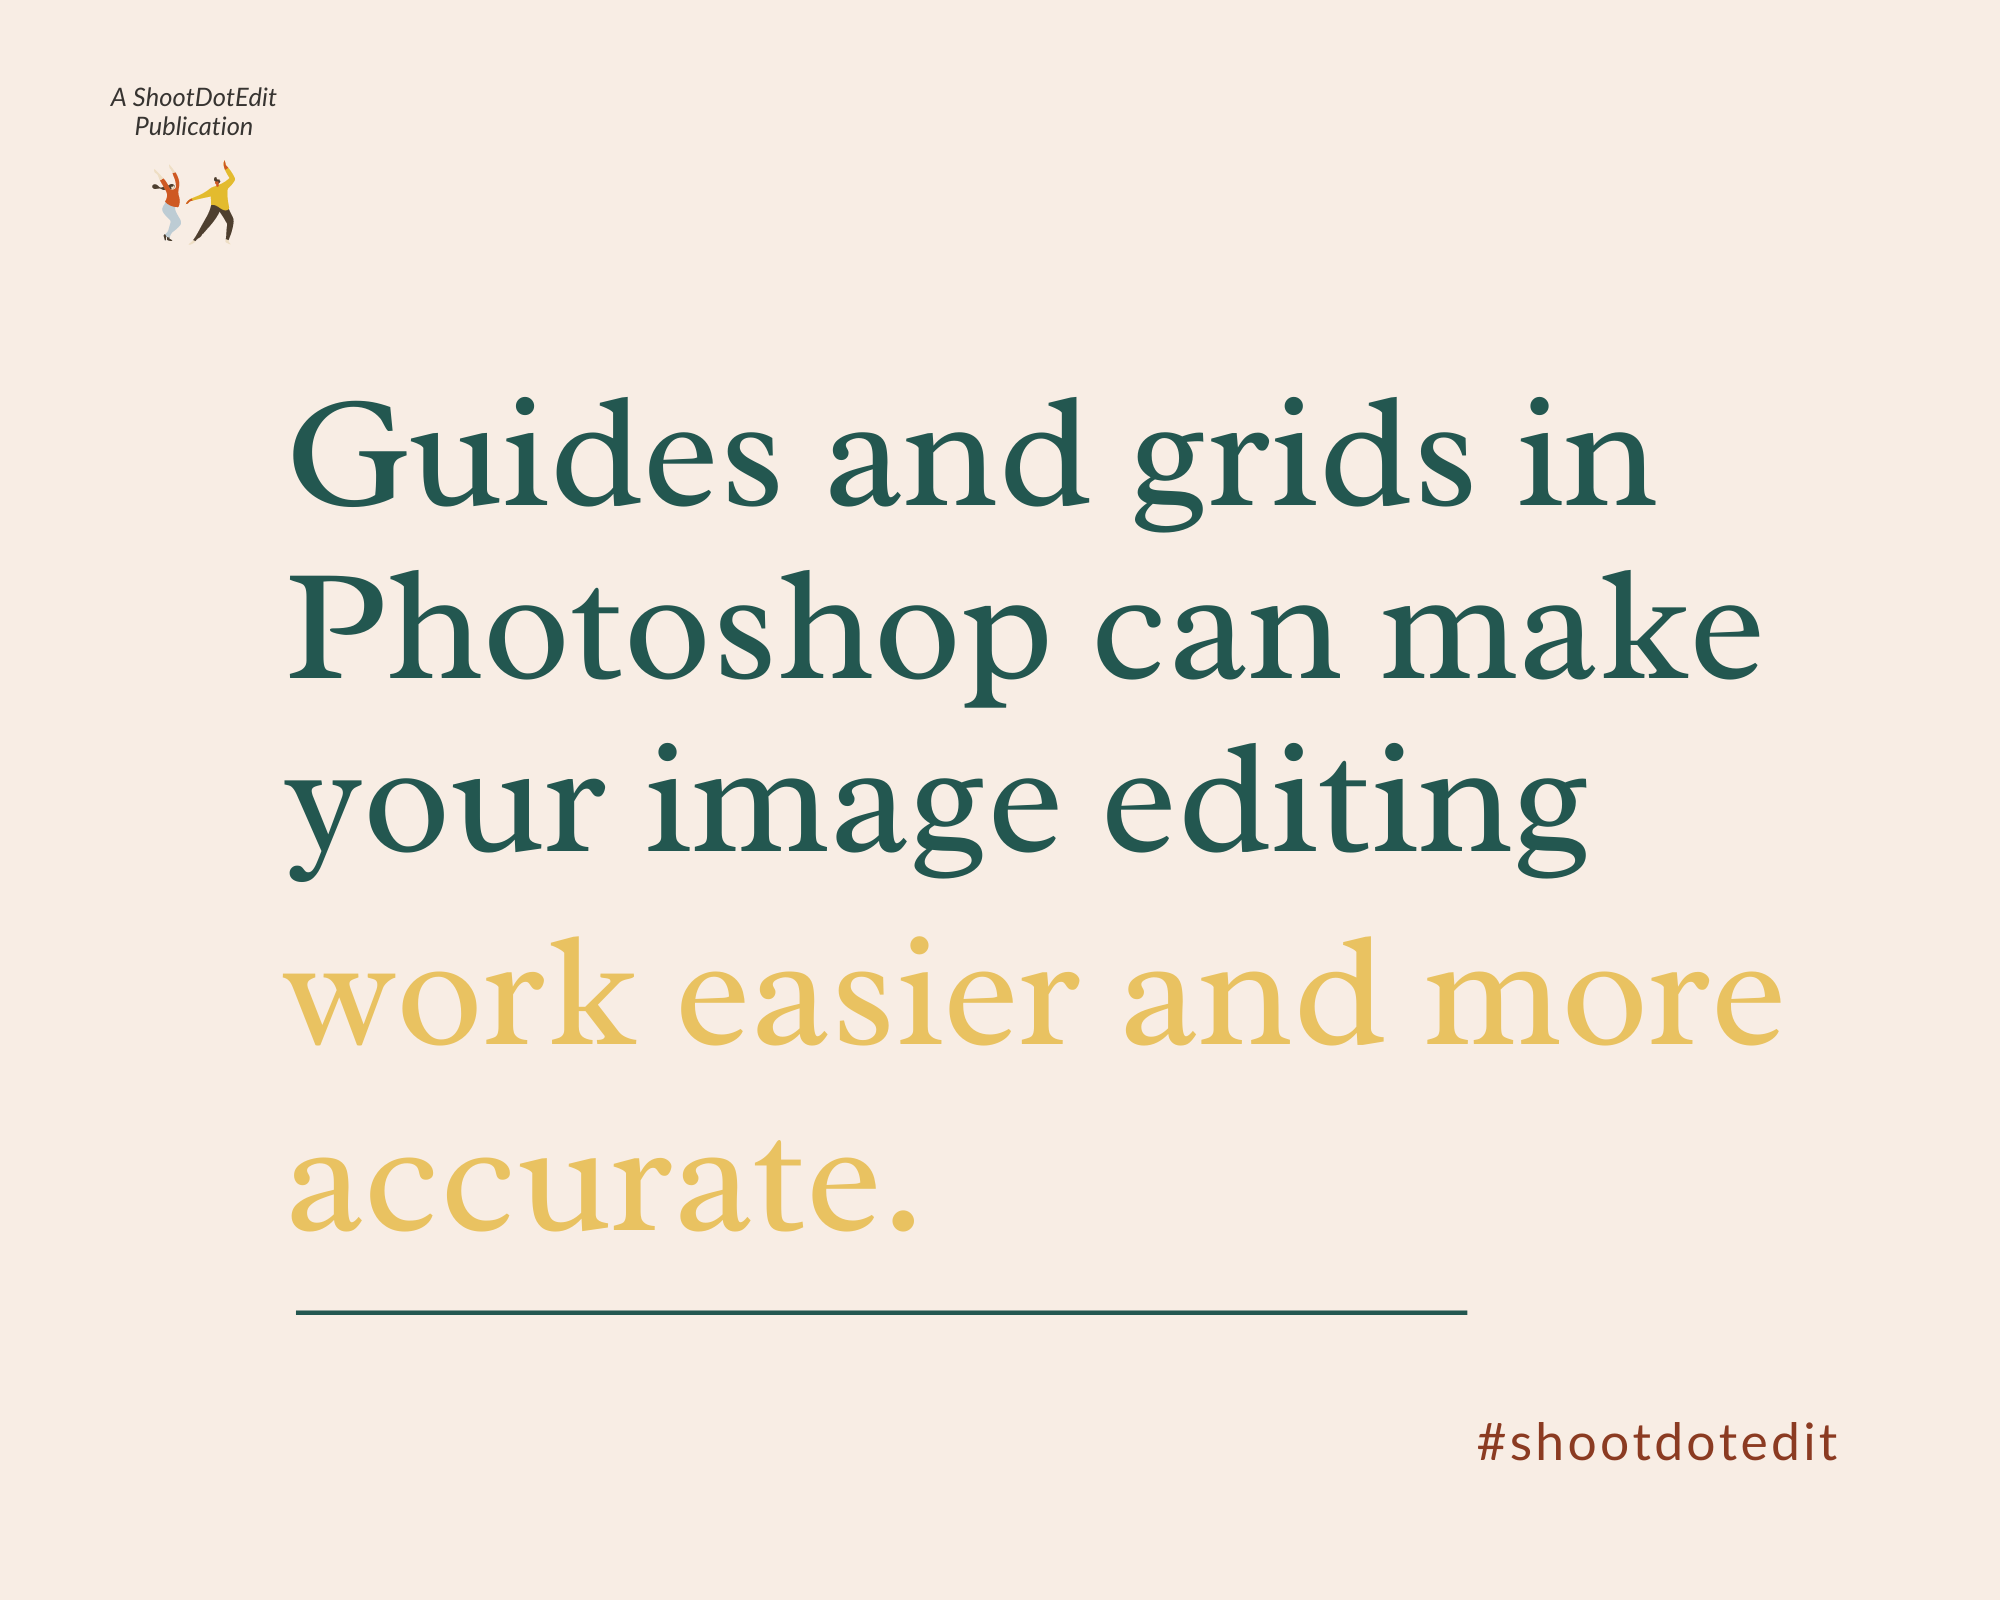 Infographic stating guides and grids in Photoshop can make your image editing work easier and more accurate